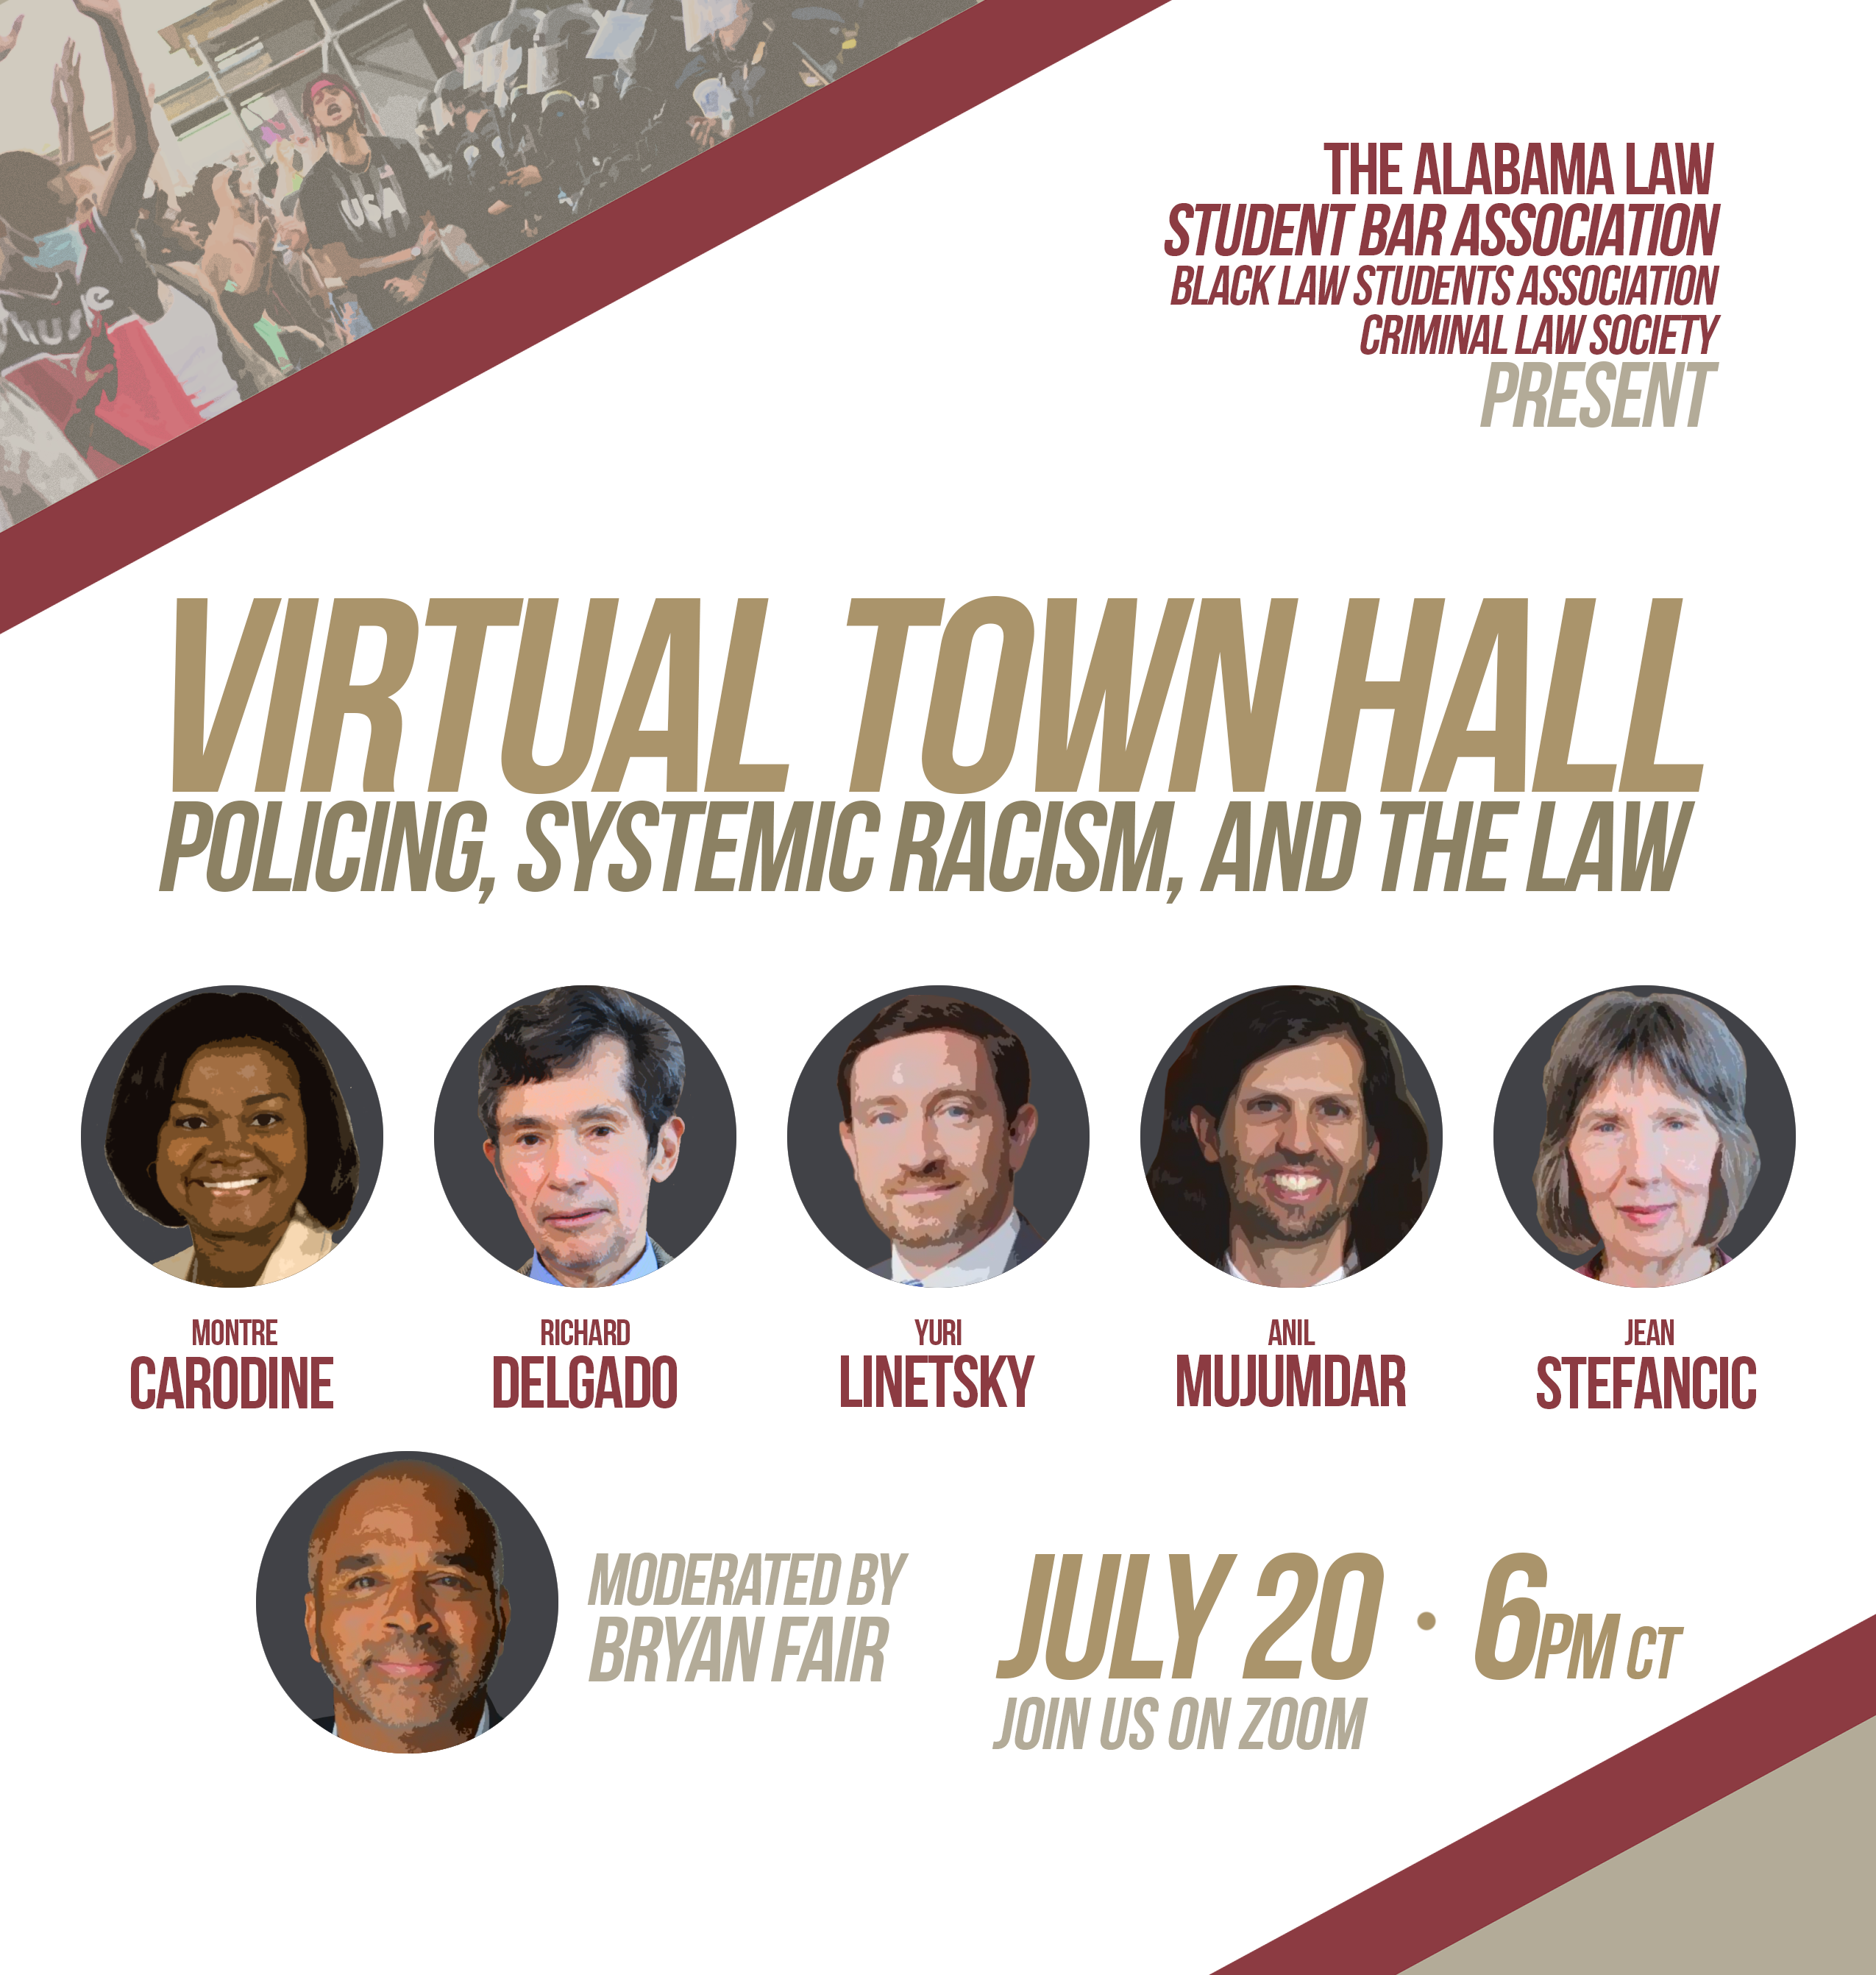 The Student Bar Association, Black Law Students Association, and the Criminal Law Society will present a virtual town hall on Policing, Systemic Racism, and the Law at 6 p.m. Monday, July 20 on Zoom. The program will feature professors Montre Carodine, Richard Delgado, Yuri Linetsky, Anil Mujumdar, and Jean Stefancic. Professor Bryan Fair will moderate the discussion.